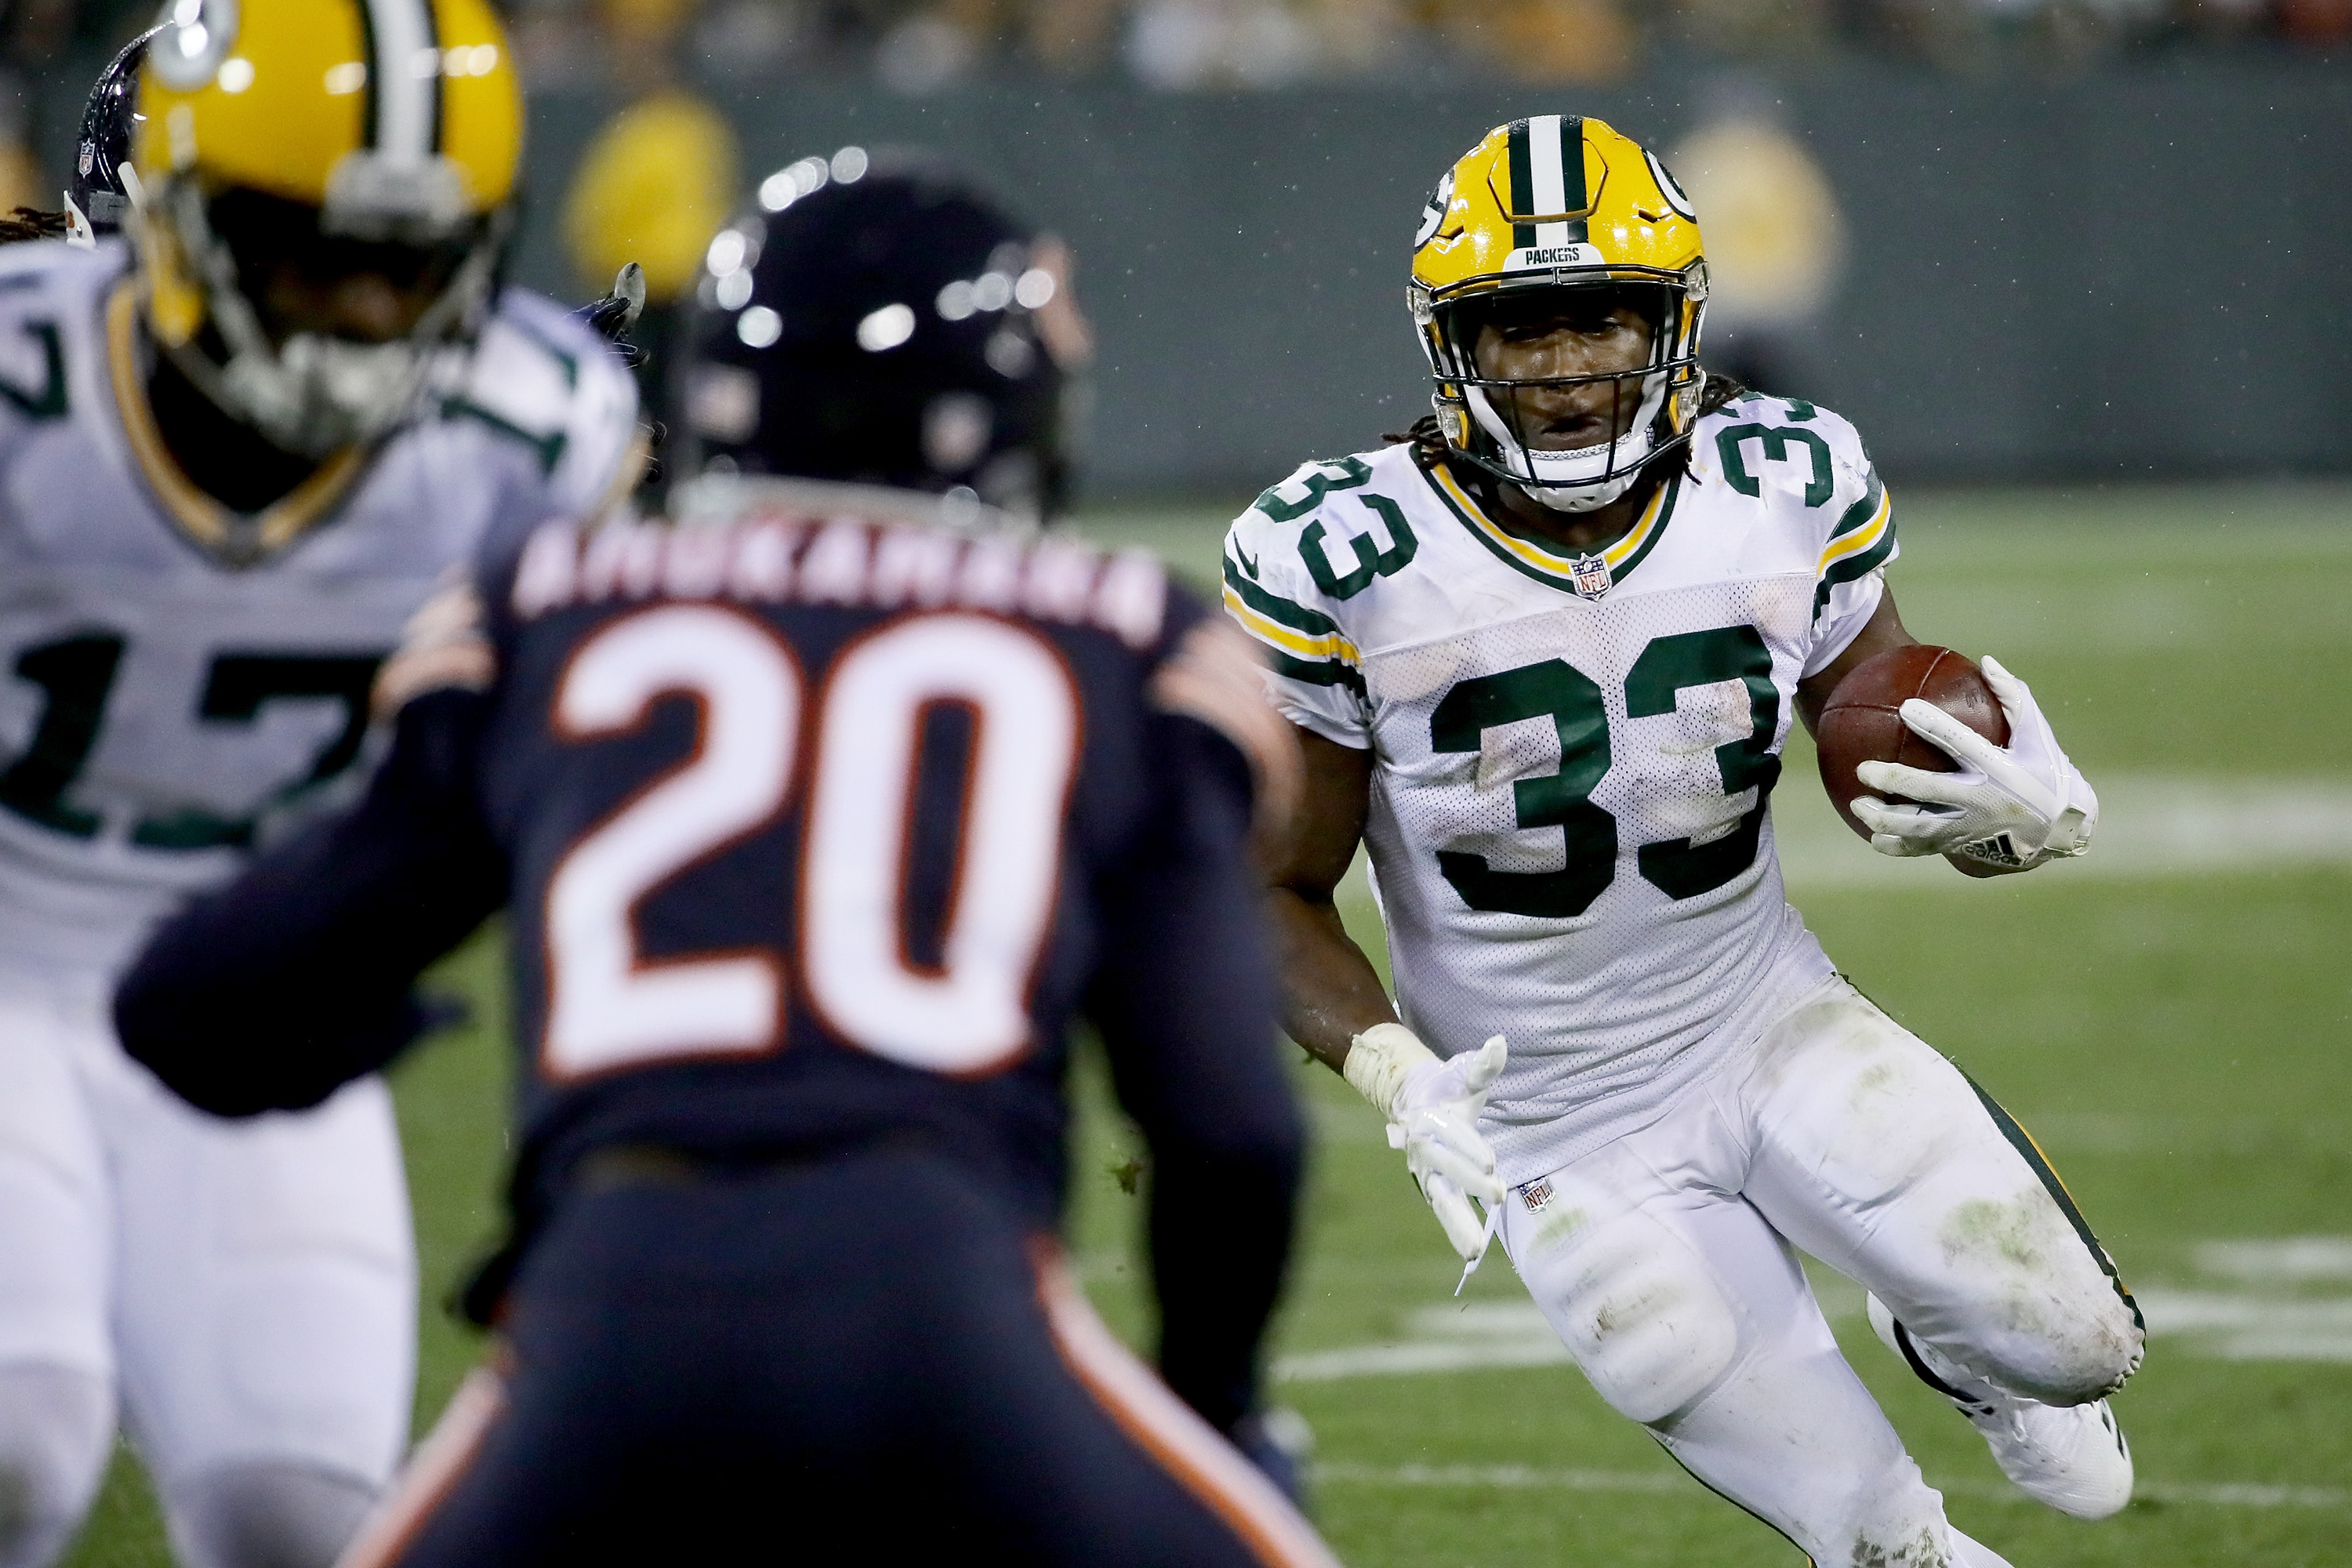 Green Bay Packers' Davante Adams Taken Off Field After Hit